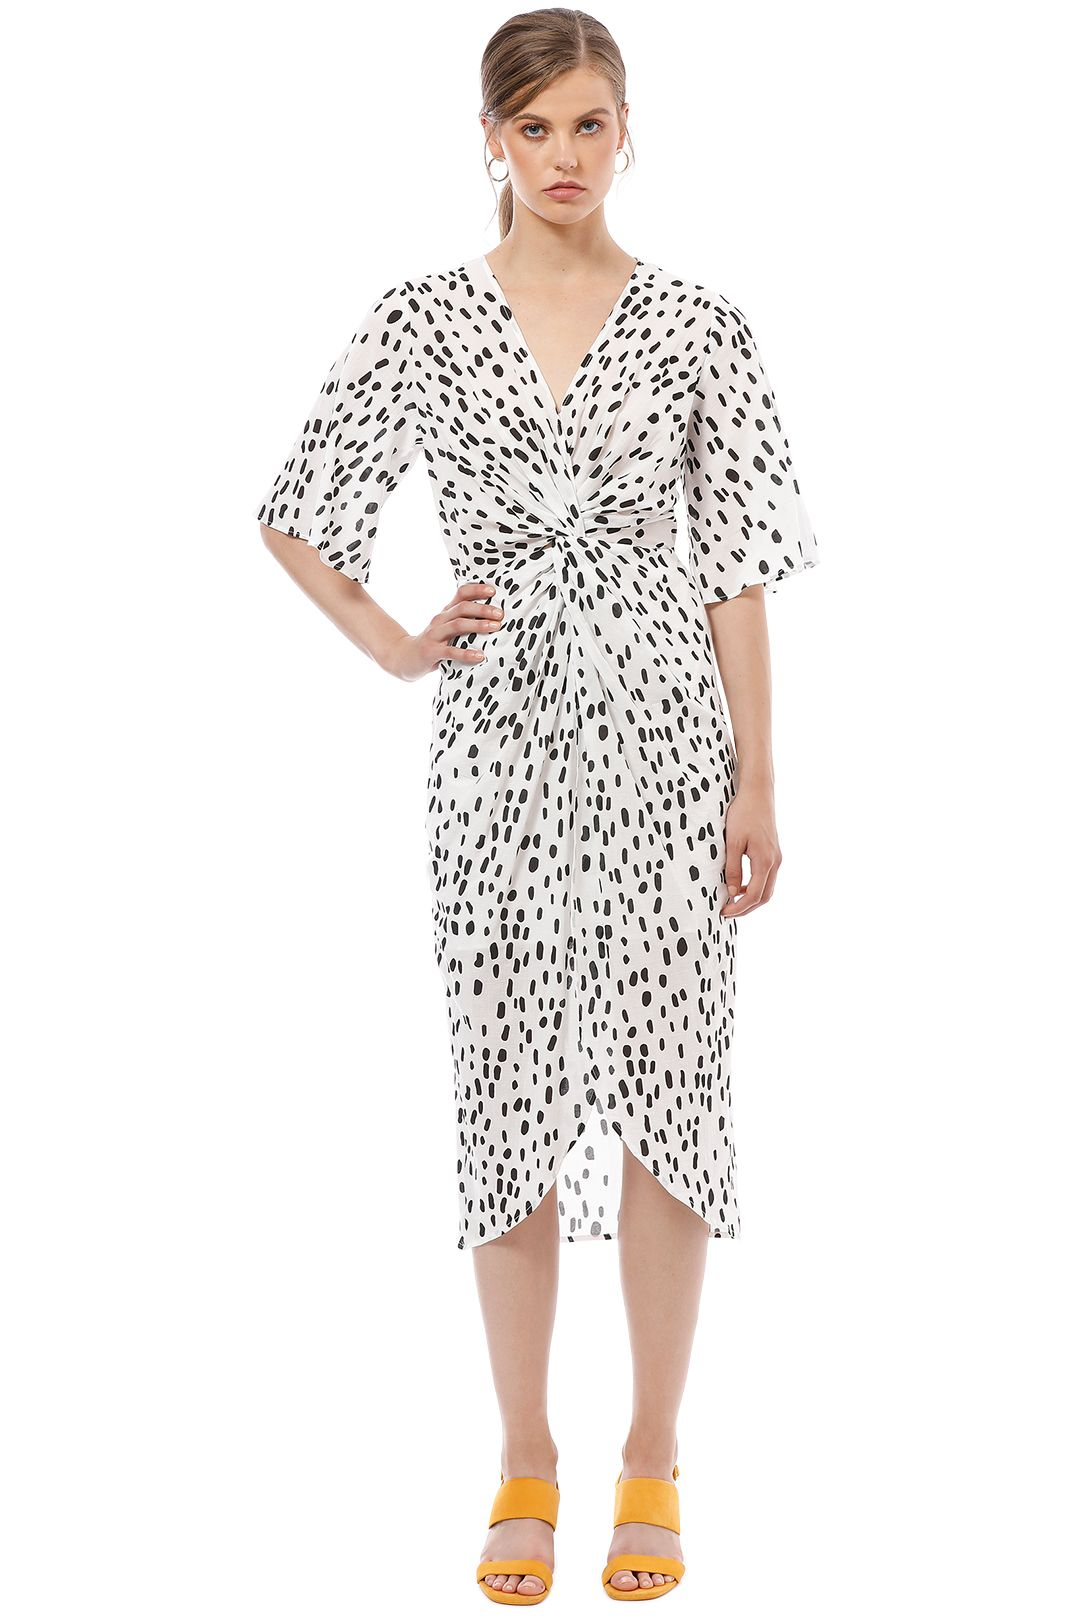 Friend of Audrey - Lucie Polka Dot Wrap Dress - White - Front